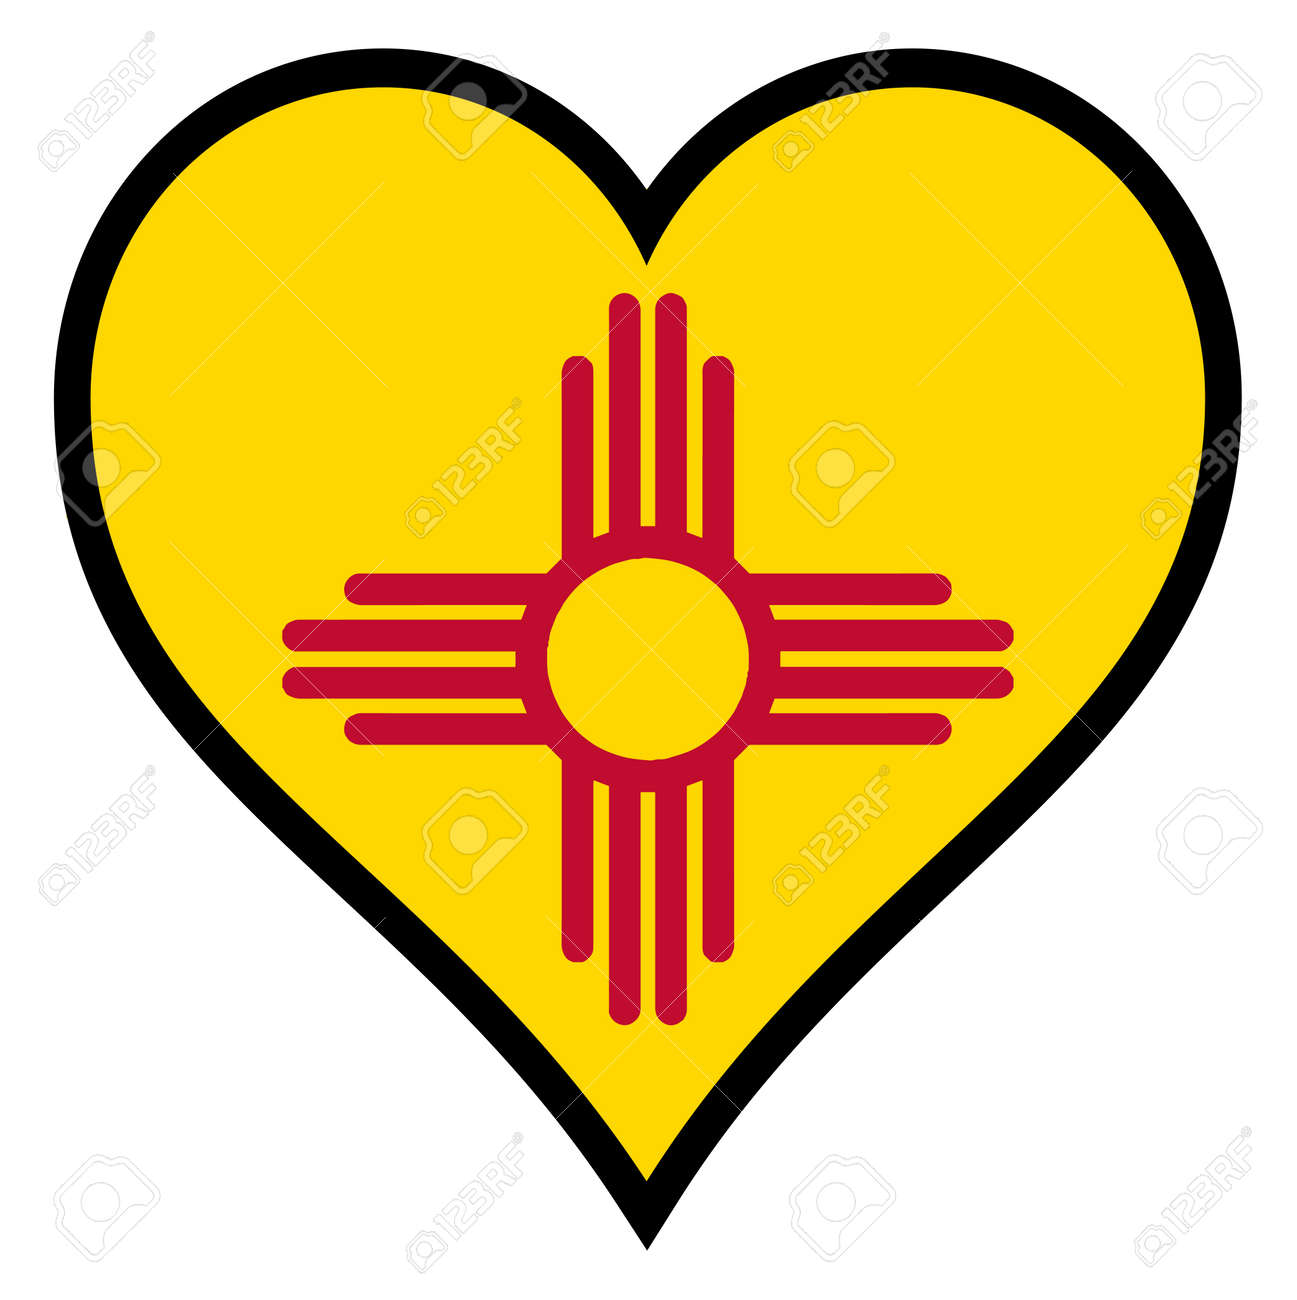 New mexico state flag within a heart all over a white background new mexico state flag within a heart all over a white background stock vector 34536609 biocorpaavc Images